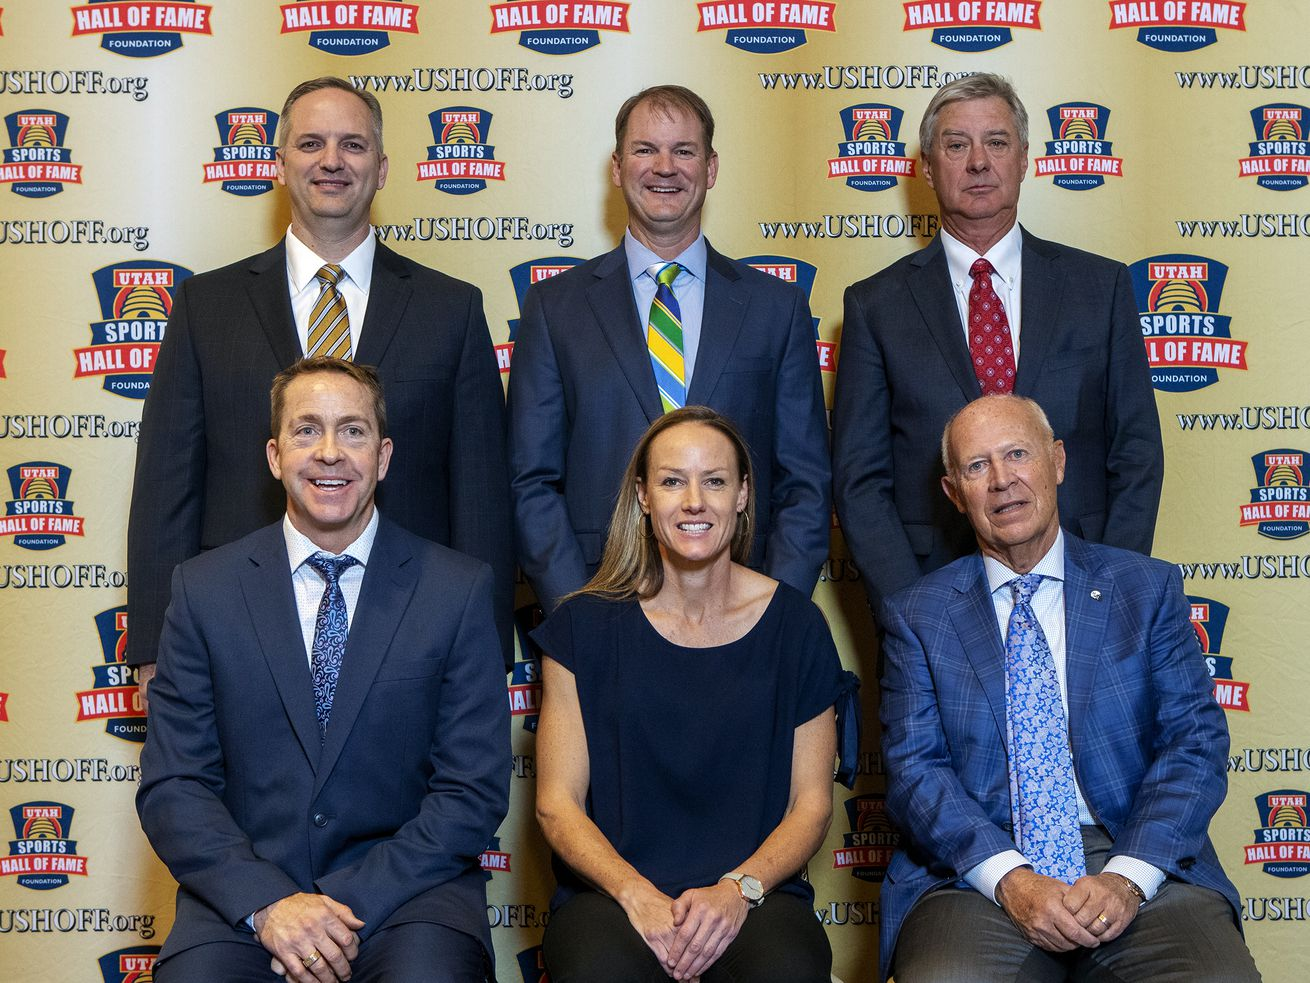 Utah Sports Hall of Fame inducts six new members